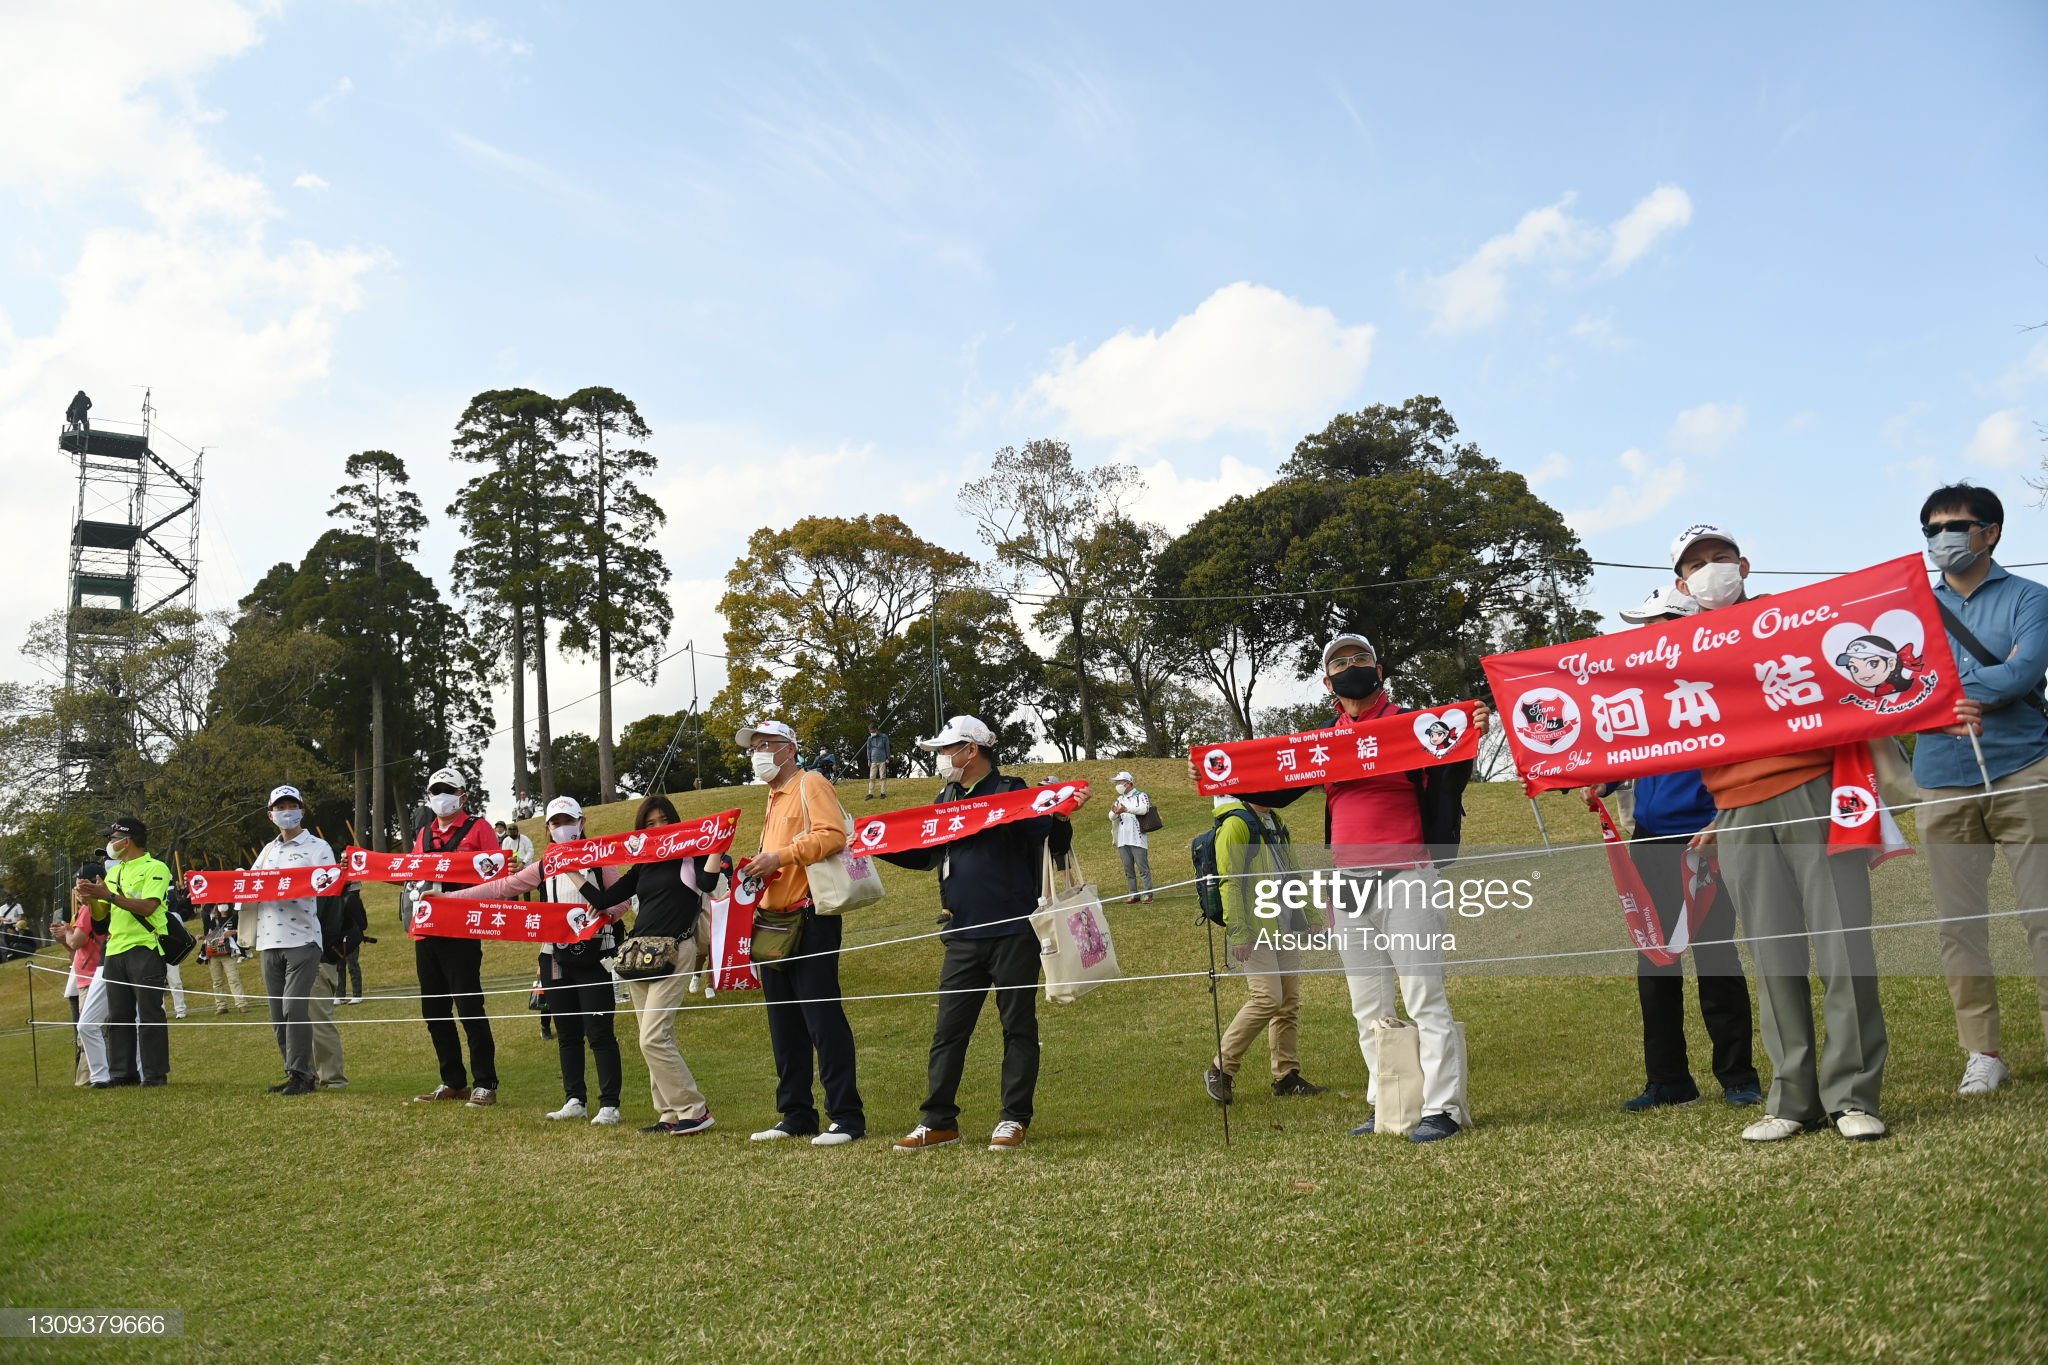 https://media.gettyimages.com/photos/fun-club-members-of-yu-kawamoto-of-japan-cheer-during-the-second-of-picture-id1309379666?s=2048x2048